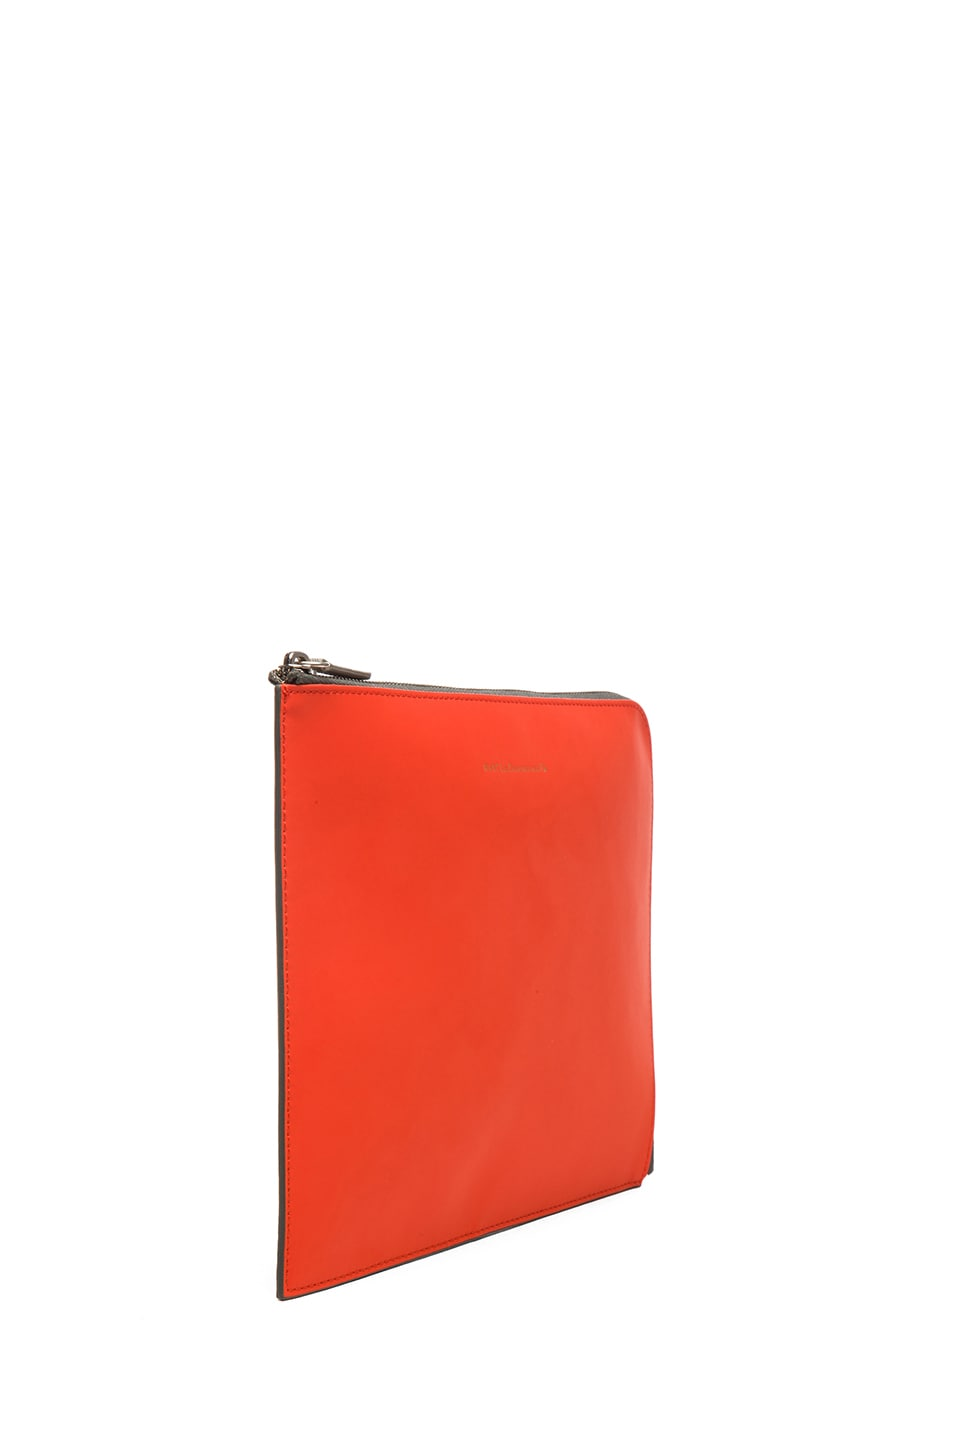 Image 3 of Want Les Essentiels De La Vie Medium Sky Harbo Leather Zip Pouch in Molten Orange